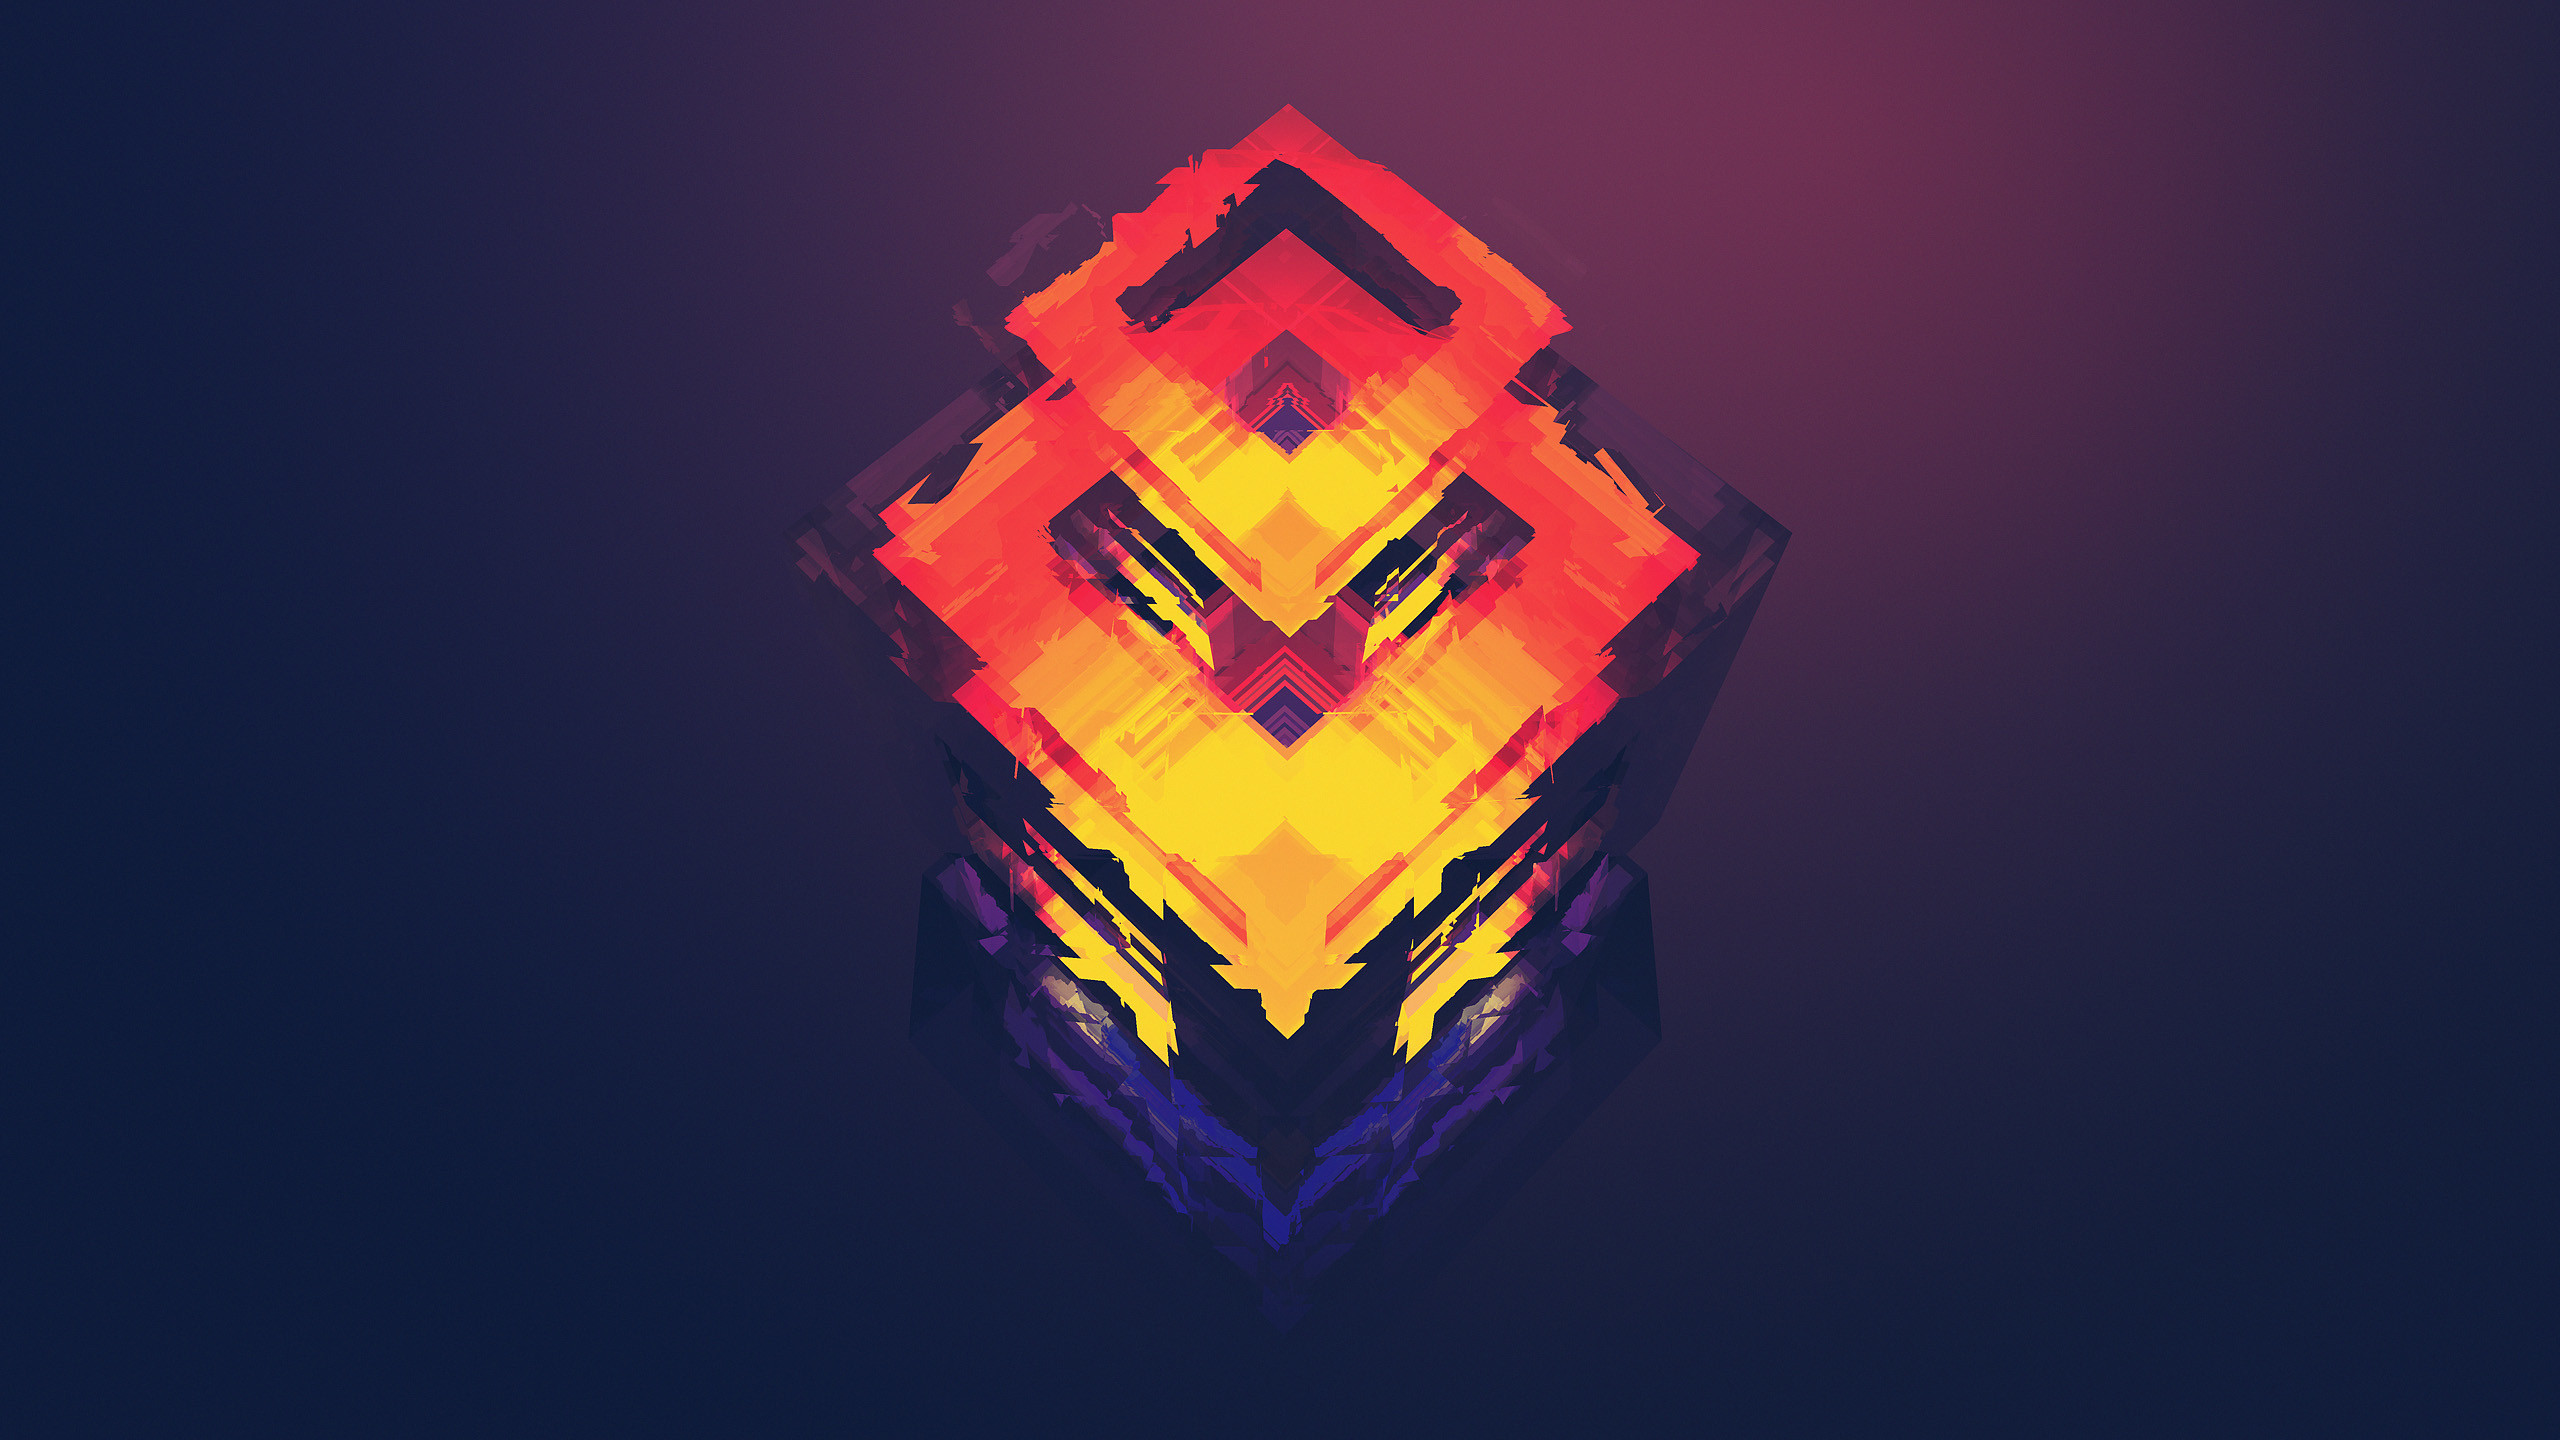 Ghost II Wallpaper Simple Minimalistic Colorful Shapes